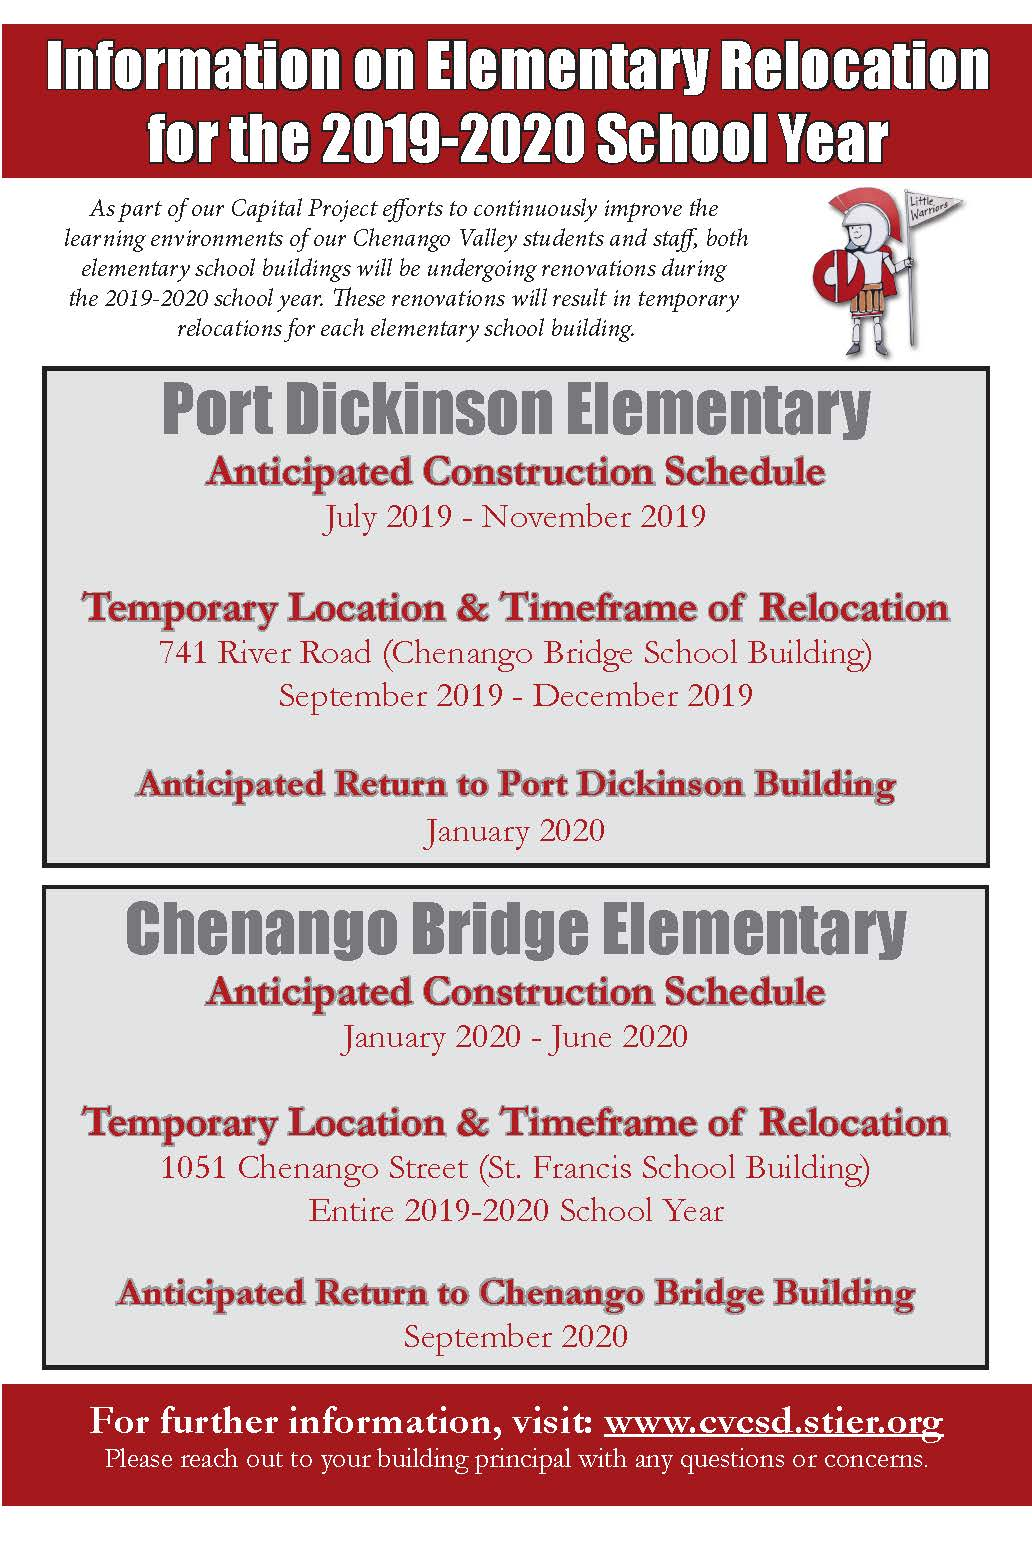 2019-20 Elementary Relocation Poster